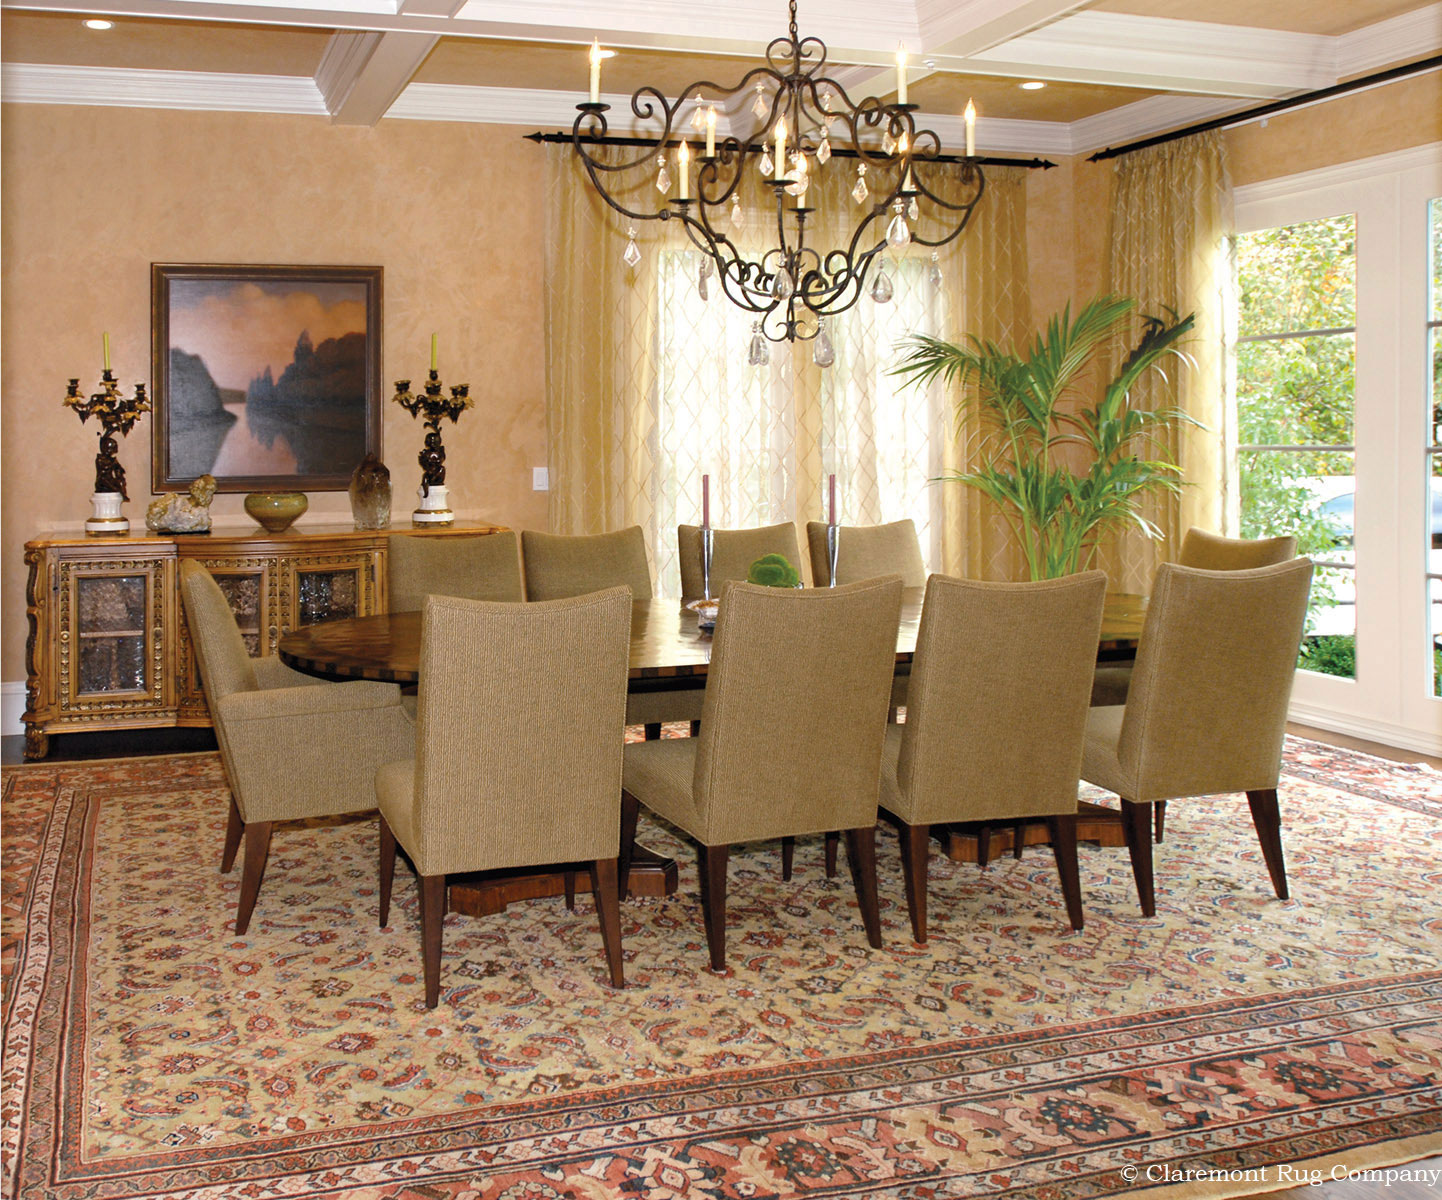 Dining Room Carpet Antique Persian Sultanabad Rug In Decor In Dining Room